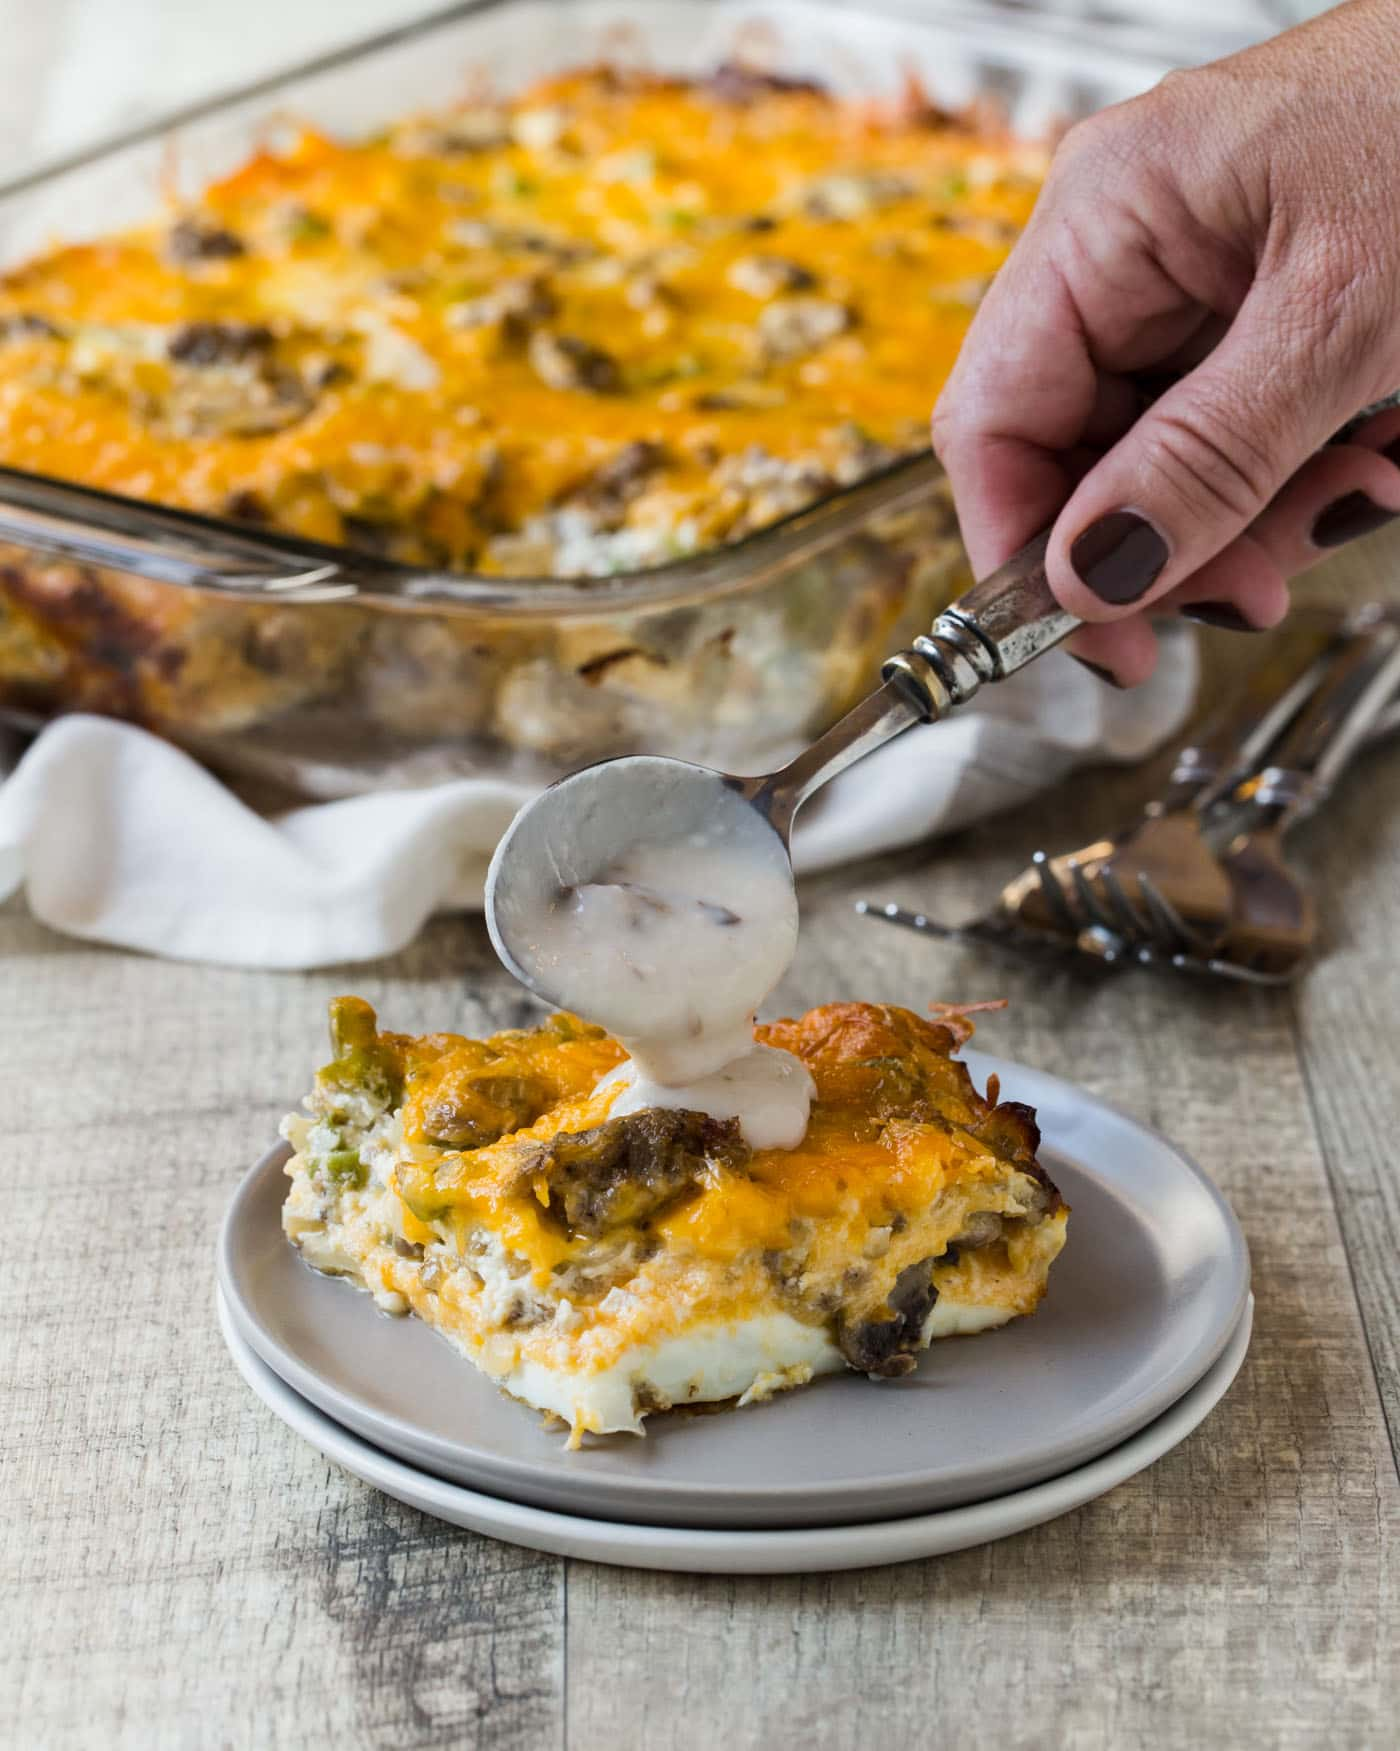 Take the stress out of hosting brunch with this simple, make-ahead recipe for Fireman's Overnight Breakfast Casserole.